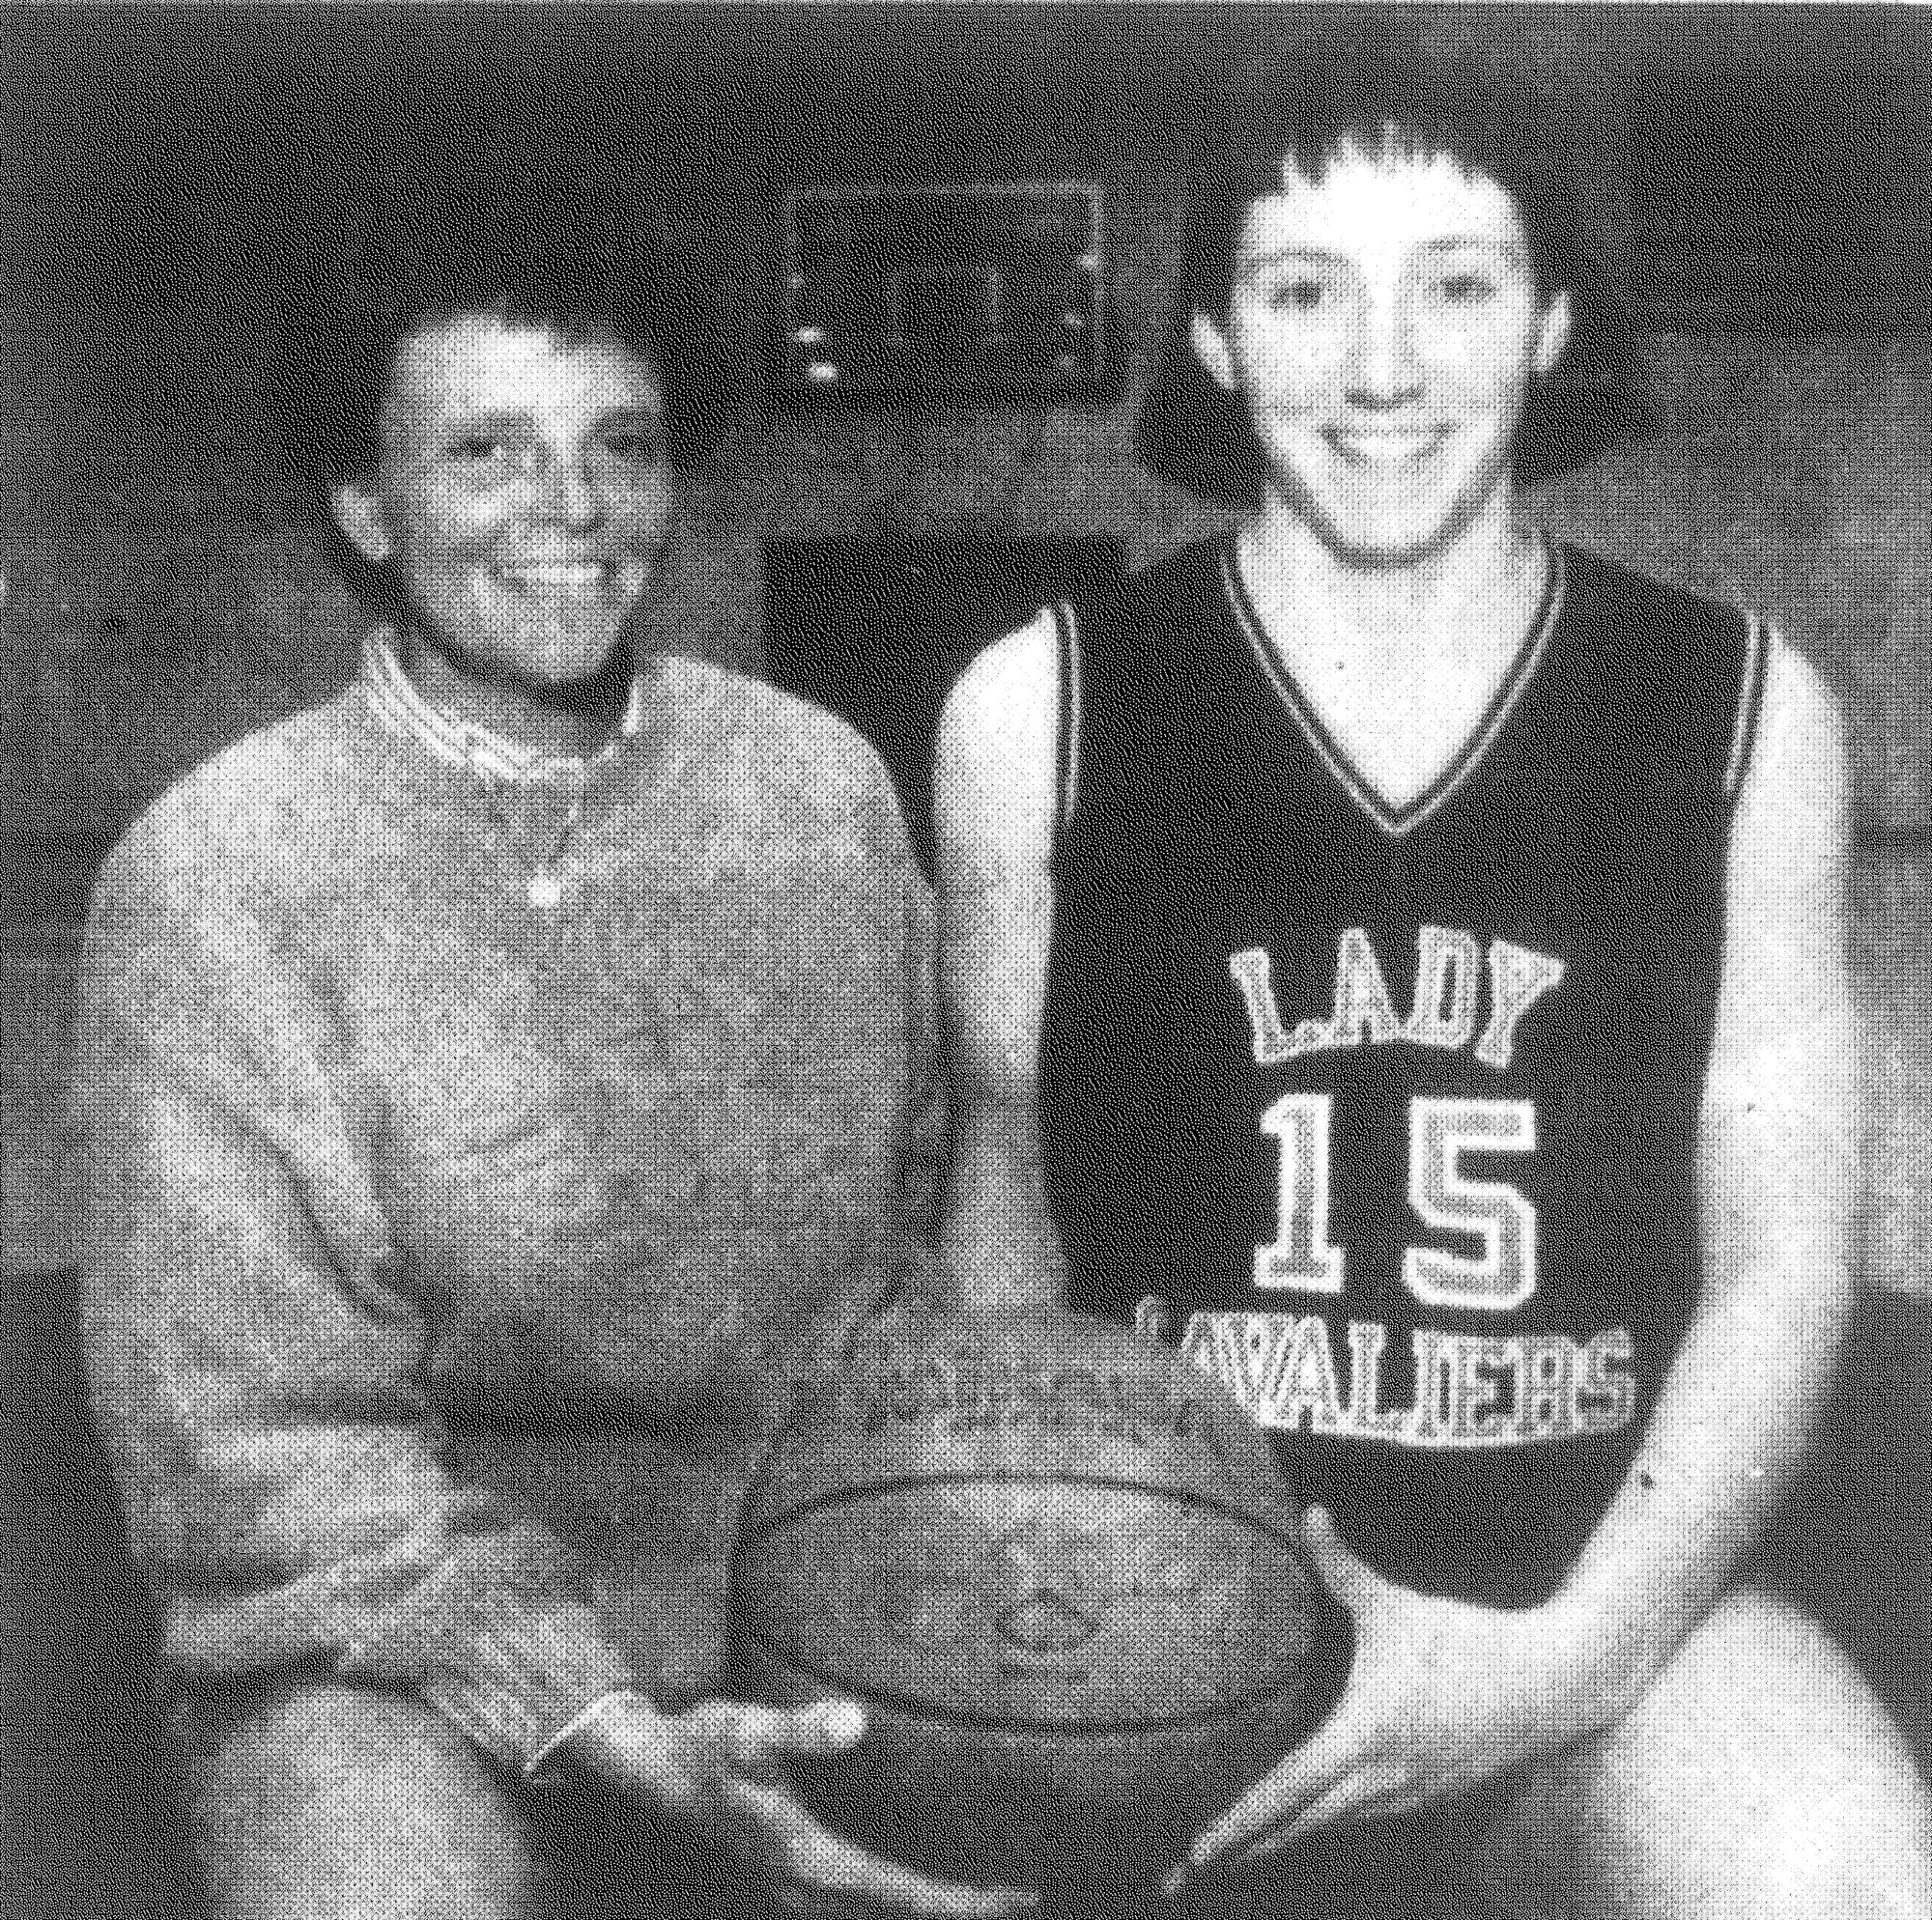 1993 - Robert E. Lee's Kim Langston and Karen White have been named Independent School Coach and Player of the Year, respectively.